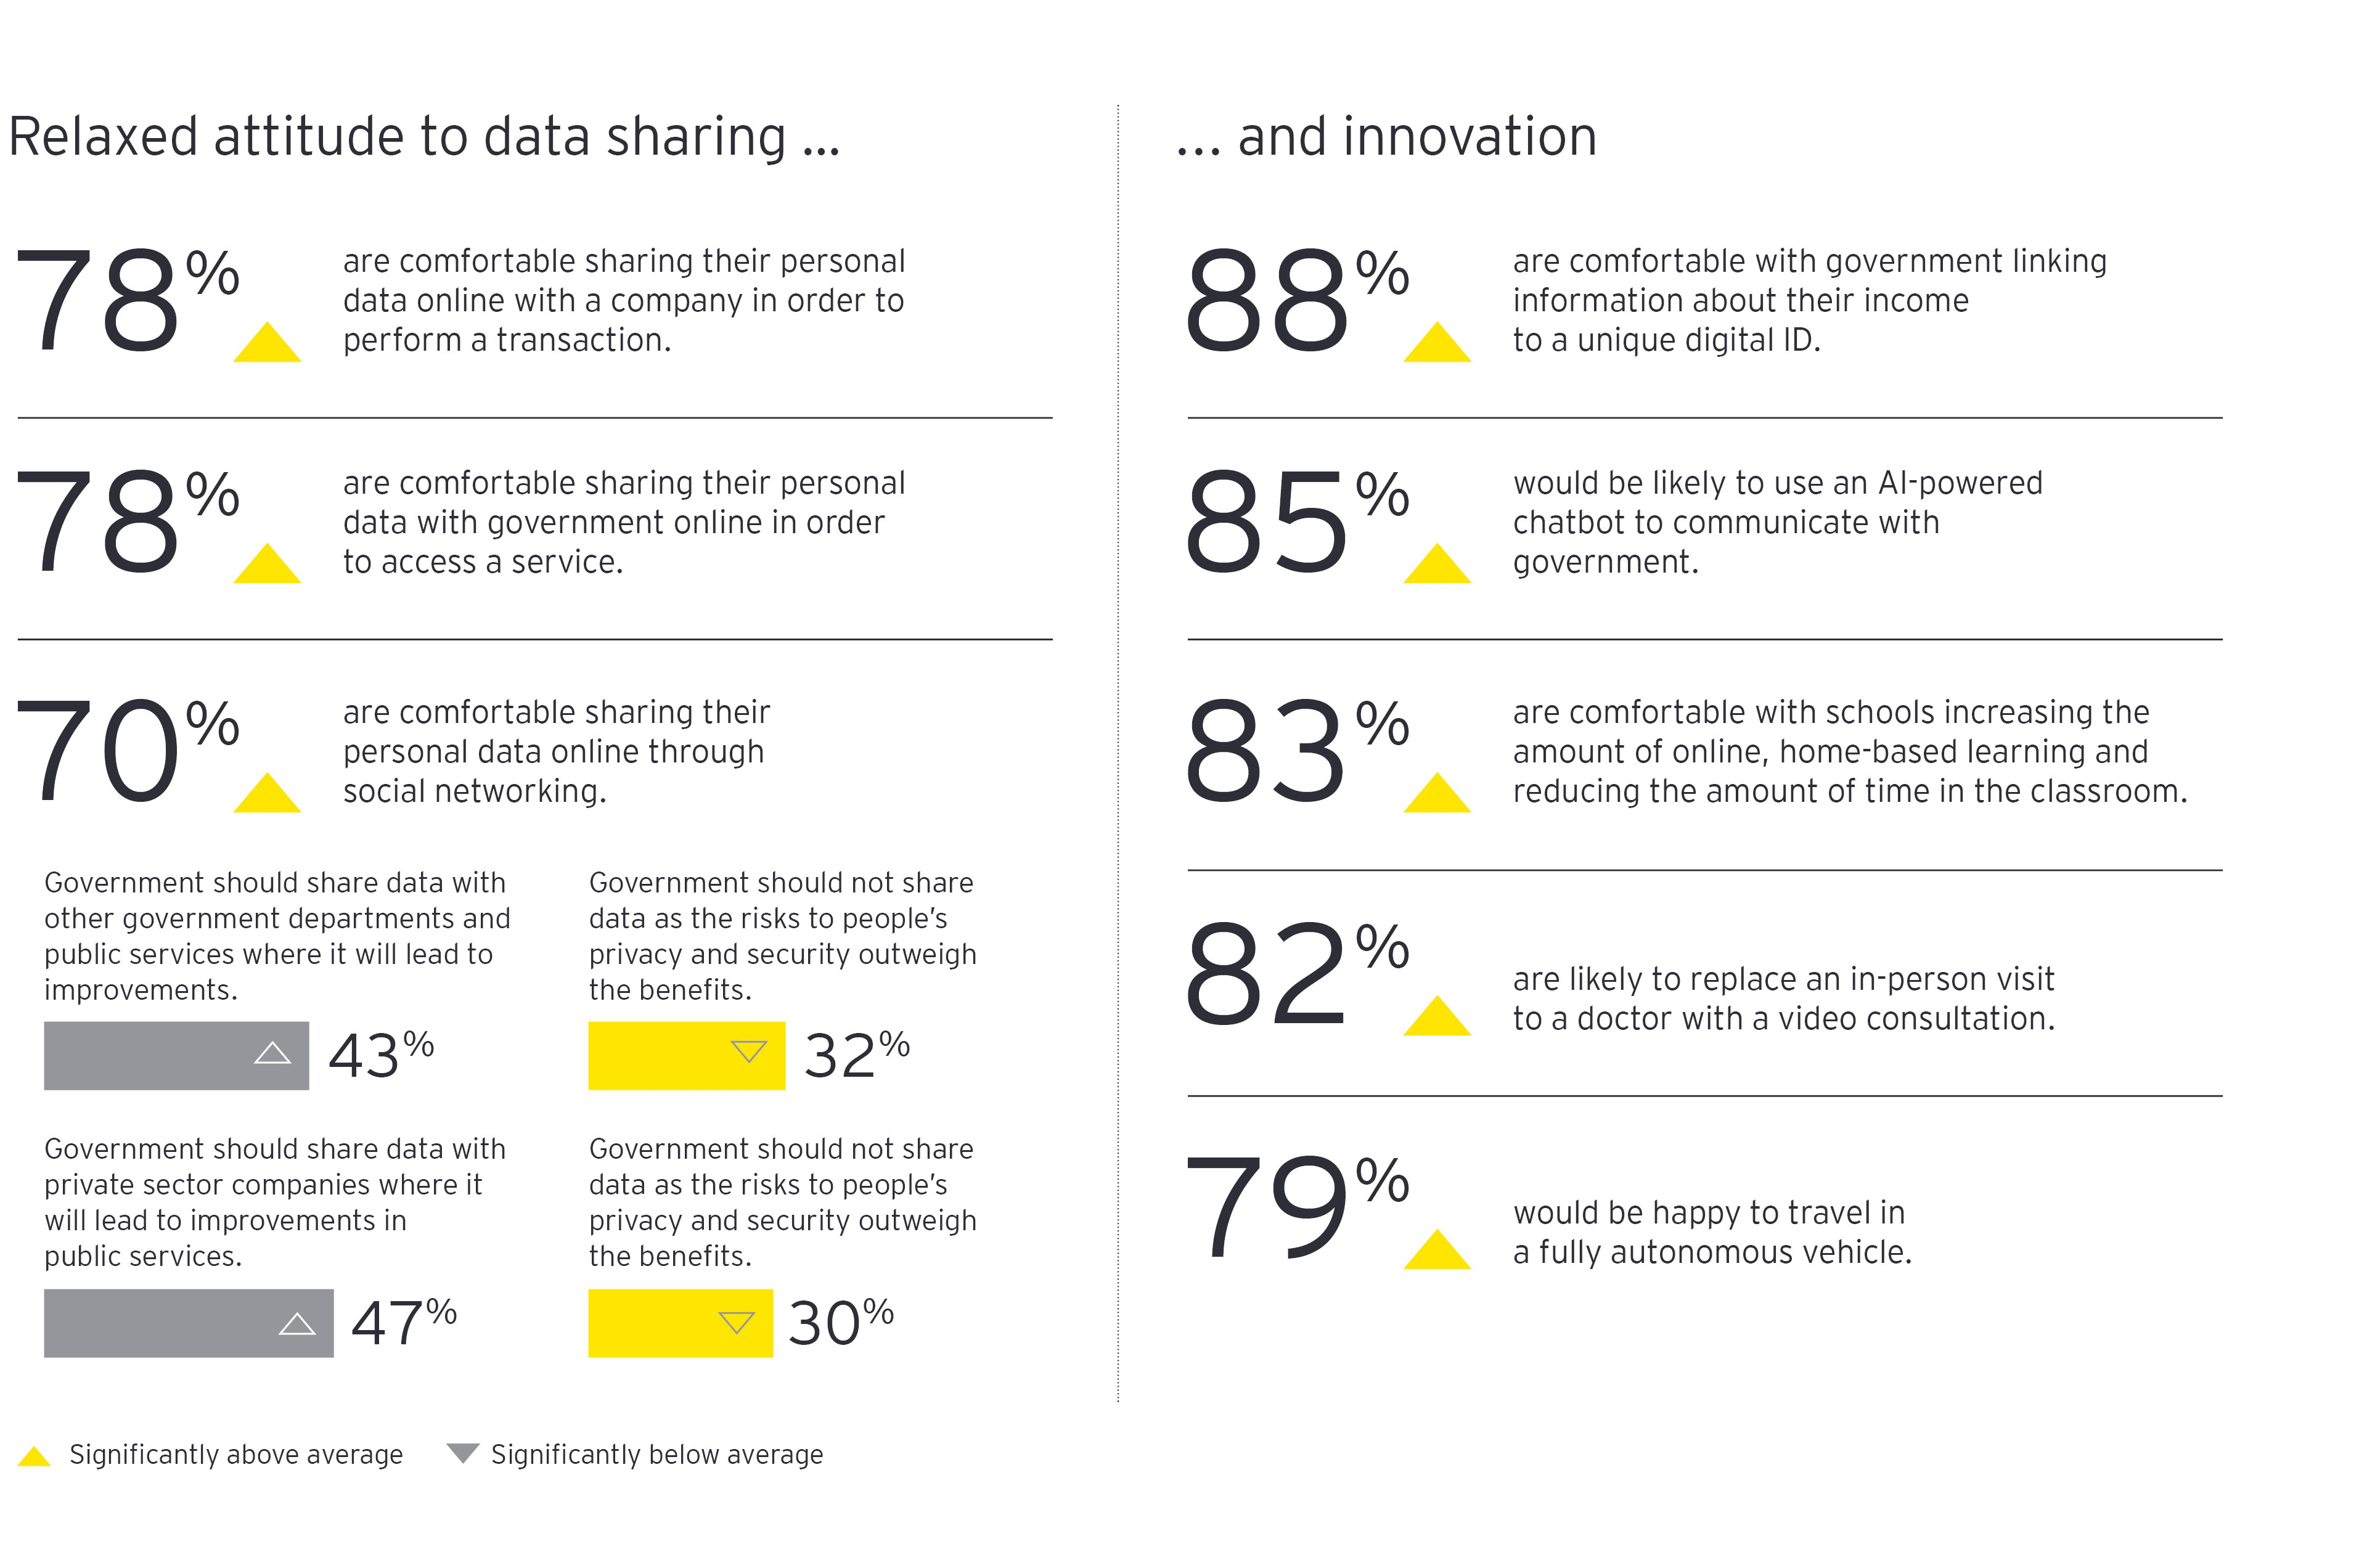 Relaxed attitude to data sharing |  and innovation chart